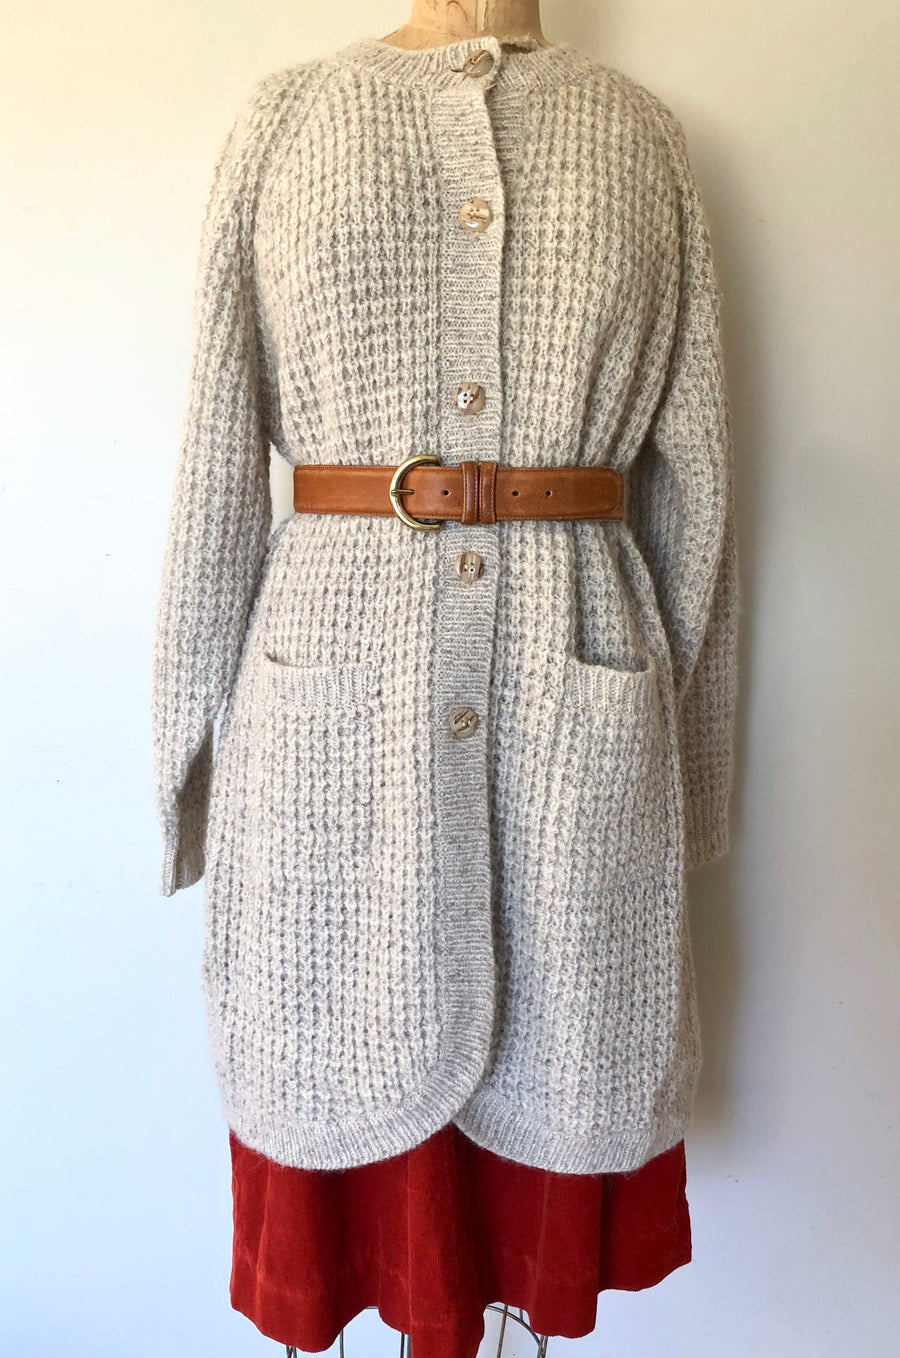 70's Long Knit Cardigan Sweater - Size M/L/XL